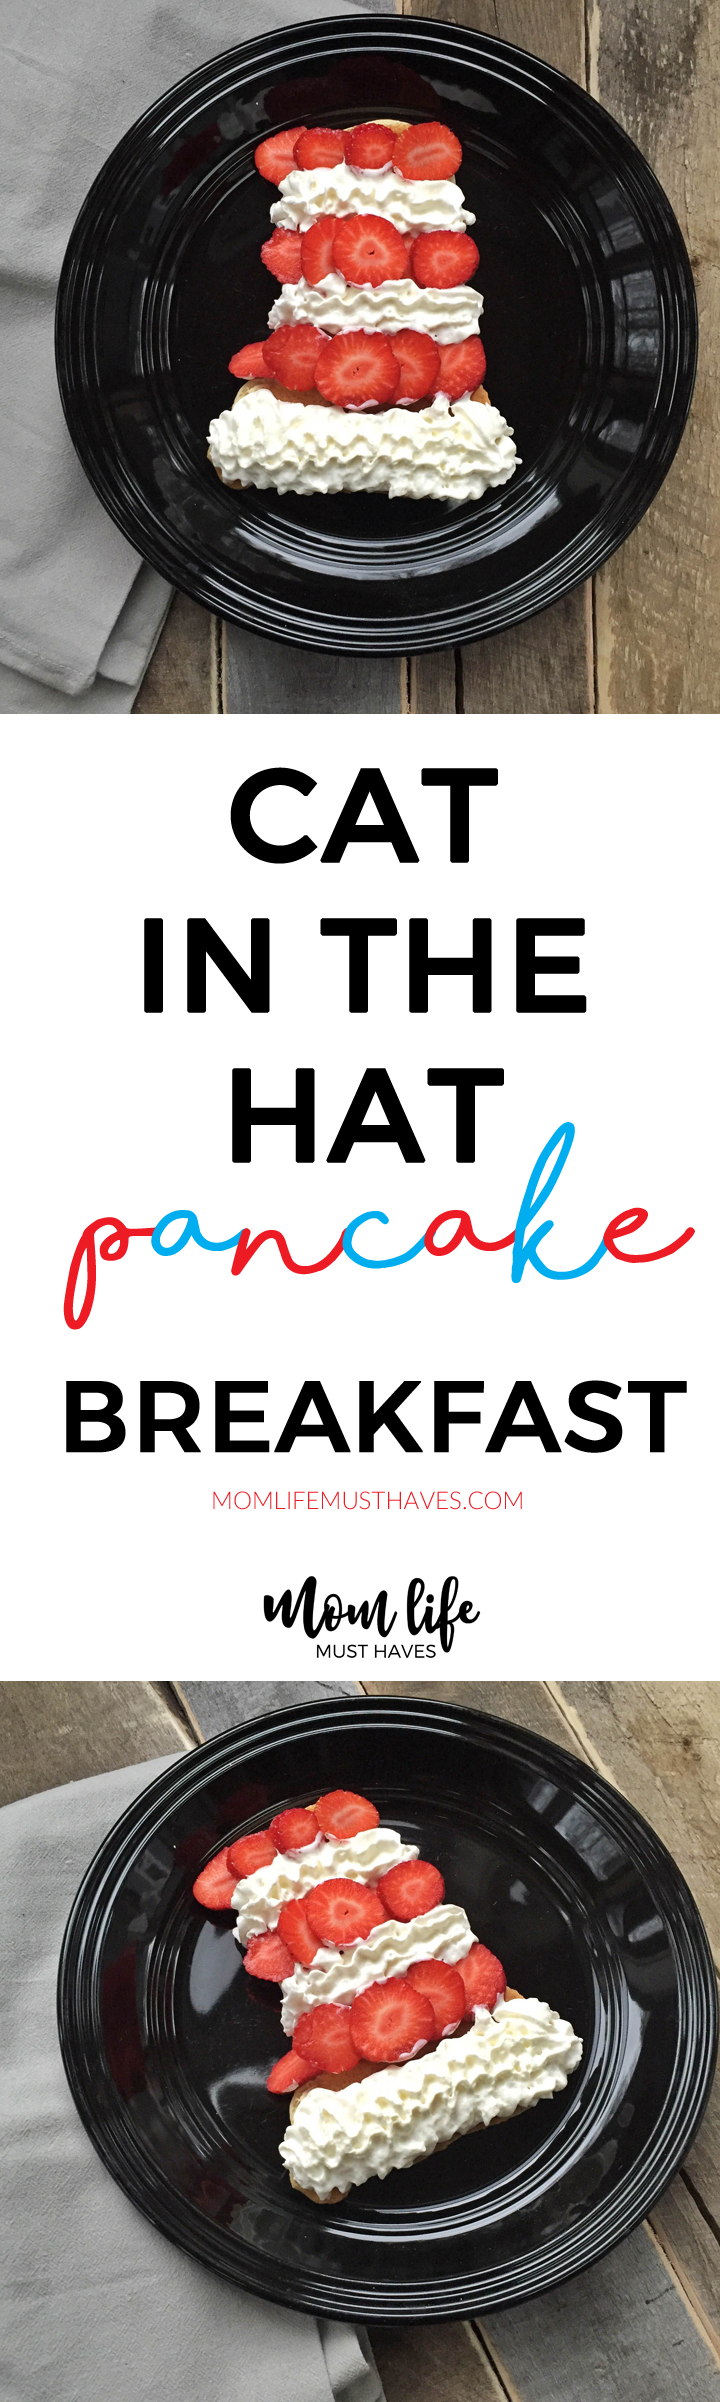 Dr. Seuss cat in the hat pancakes @ momlifemusthaves.com